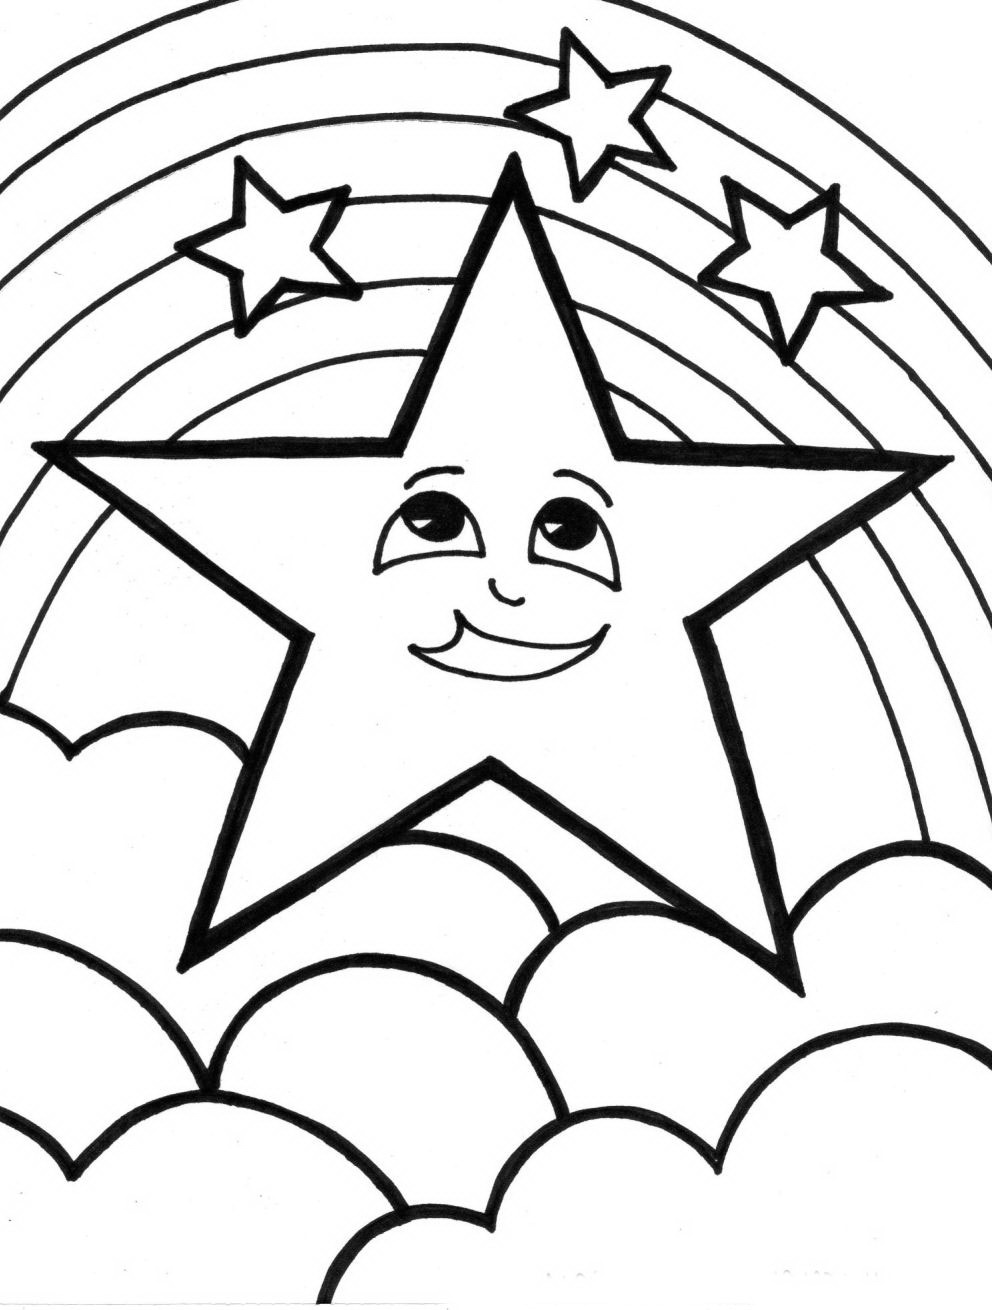 coloring pictures of rainbows rainbow coloring pages for childrens printable for free of pictures coloring rainbows